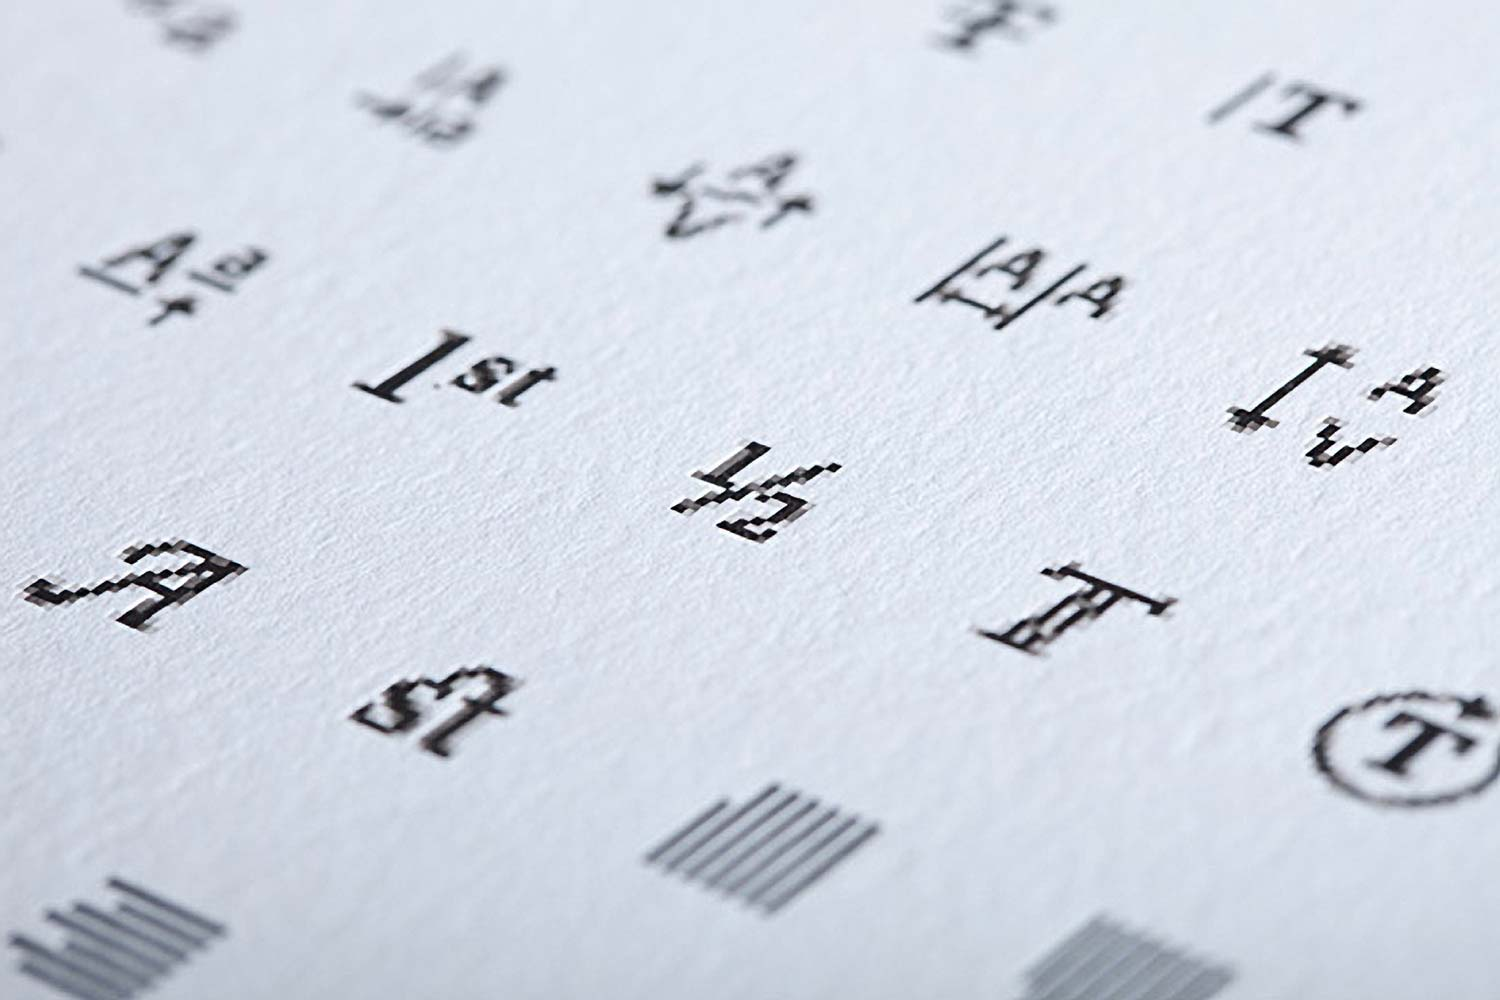 letterpressed-indesign-icons-zoom